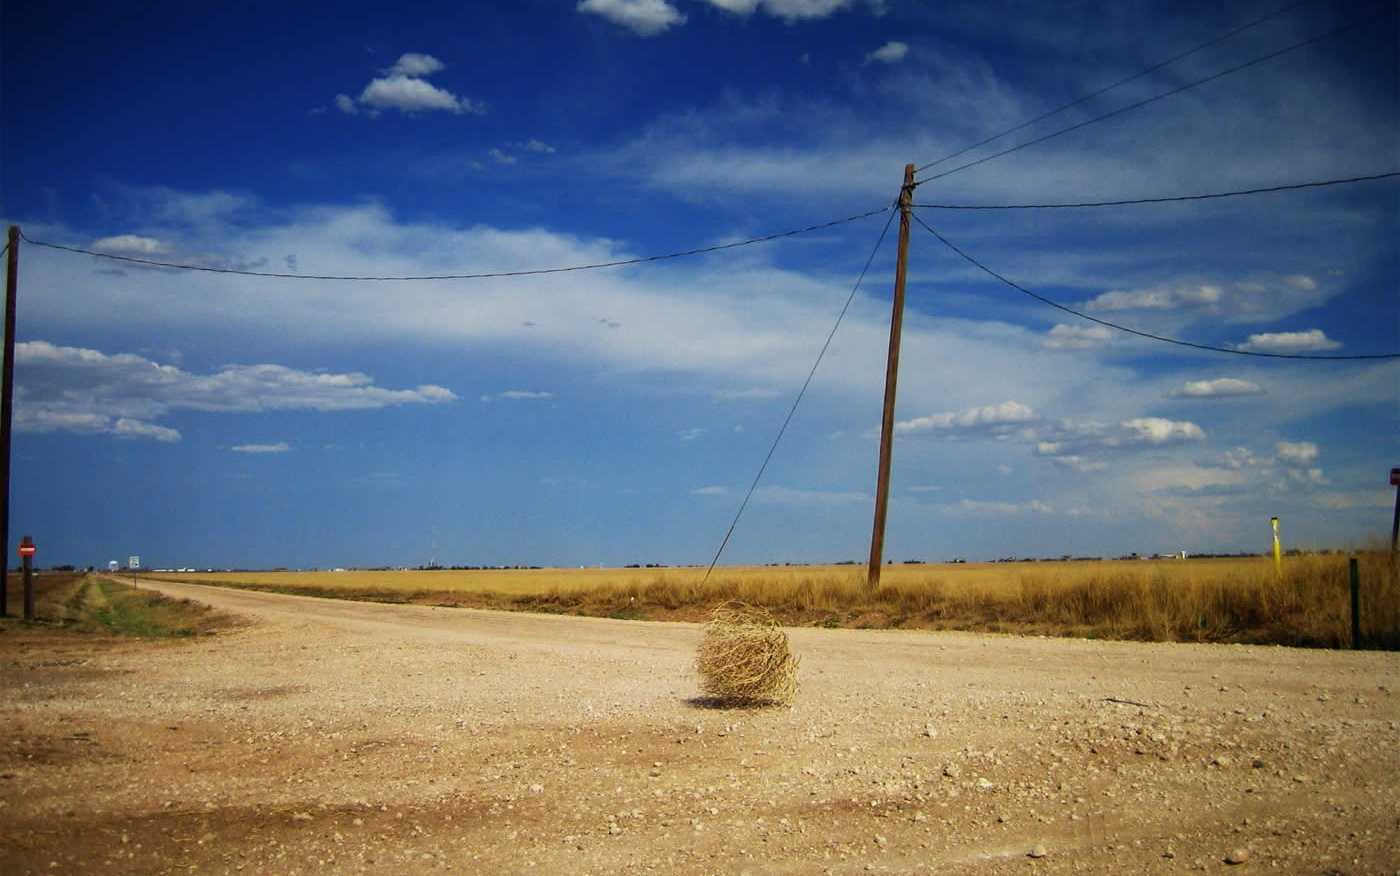 how to say tumbleweed in french